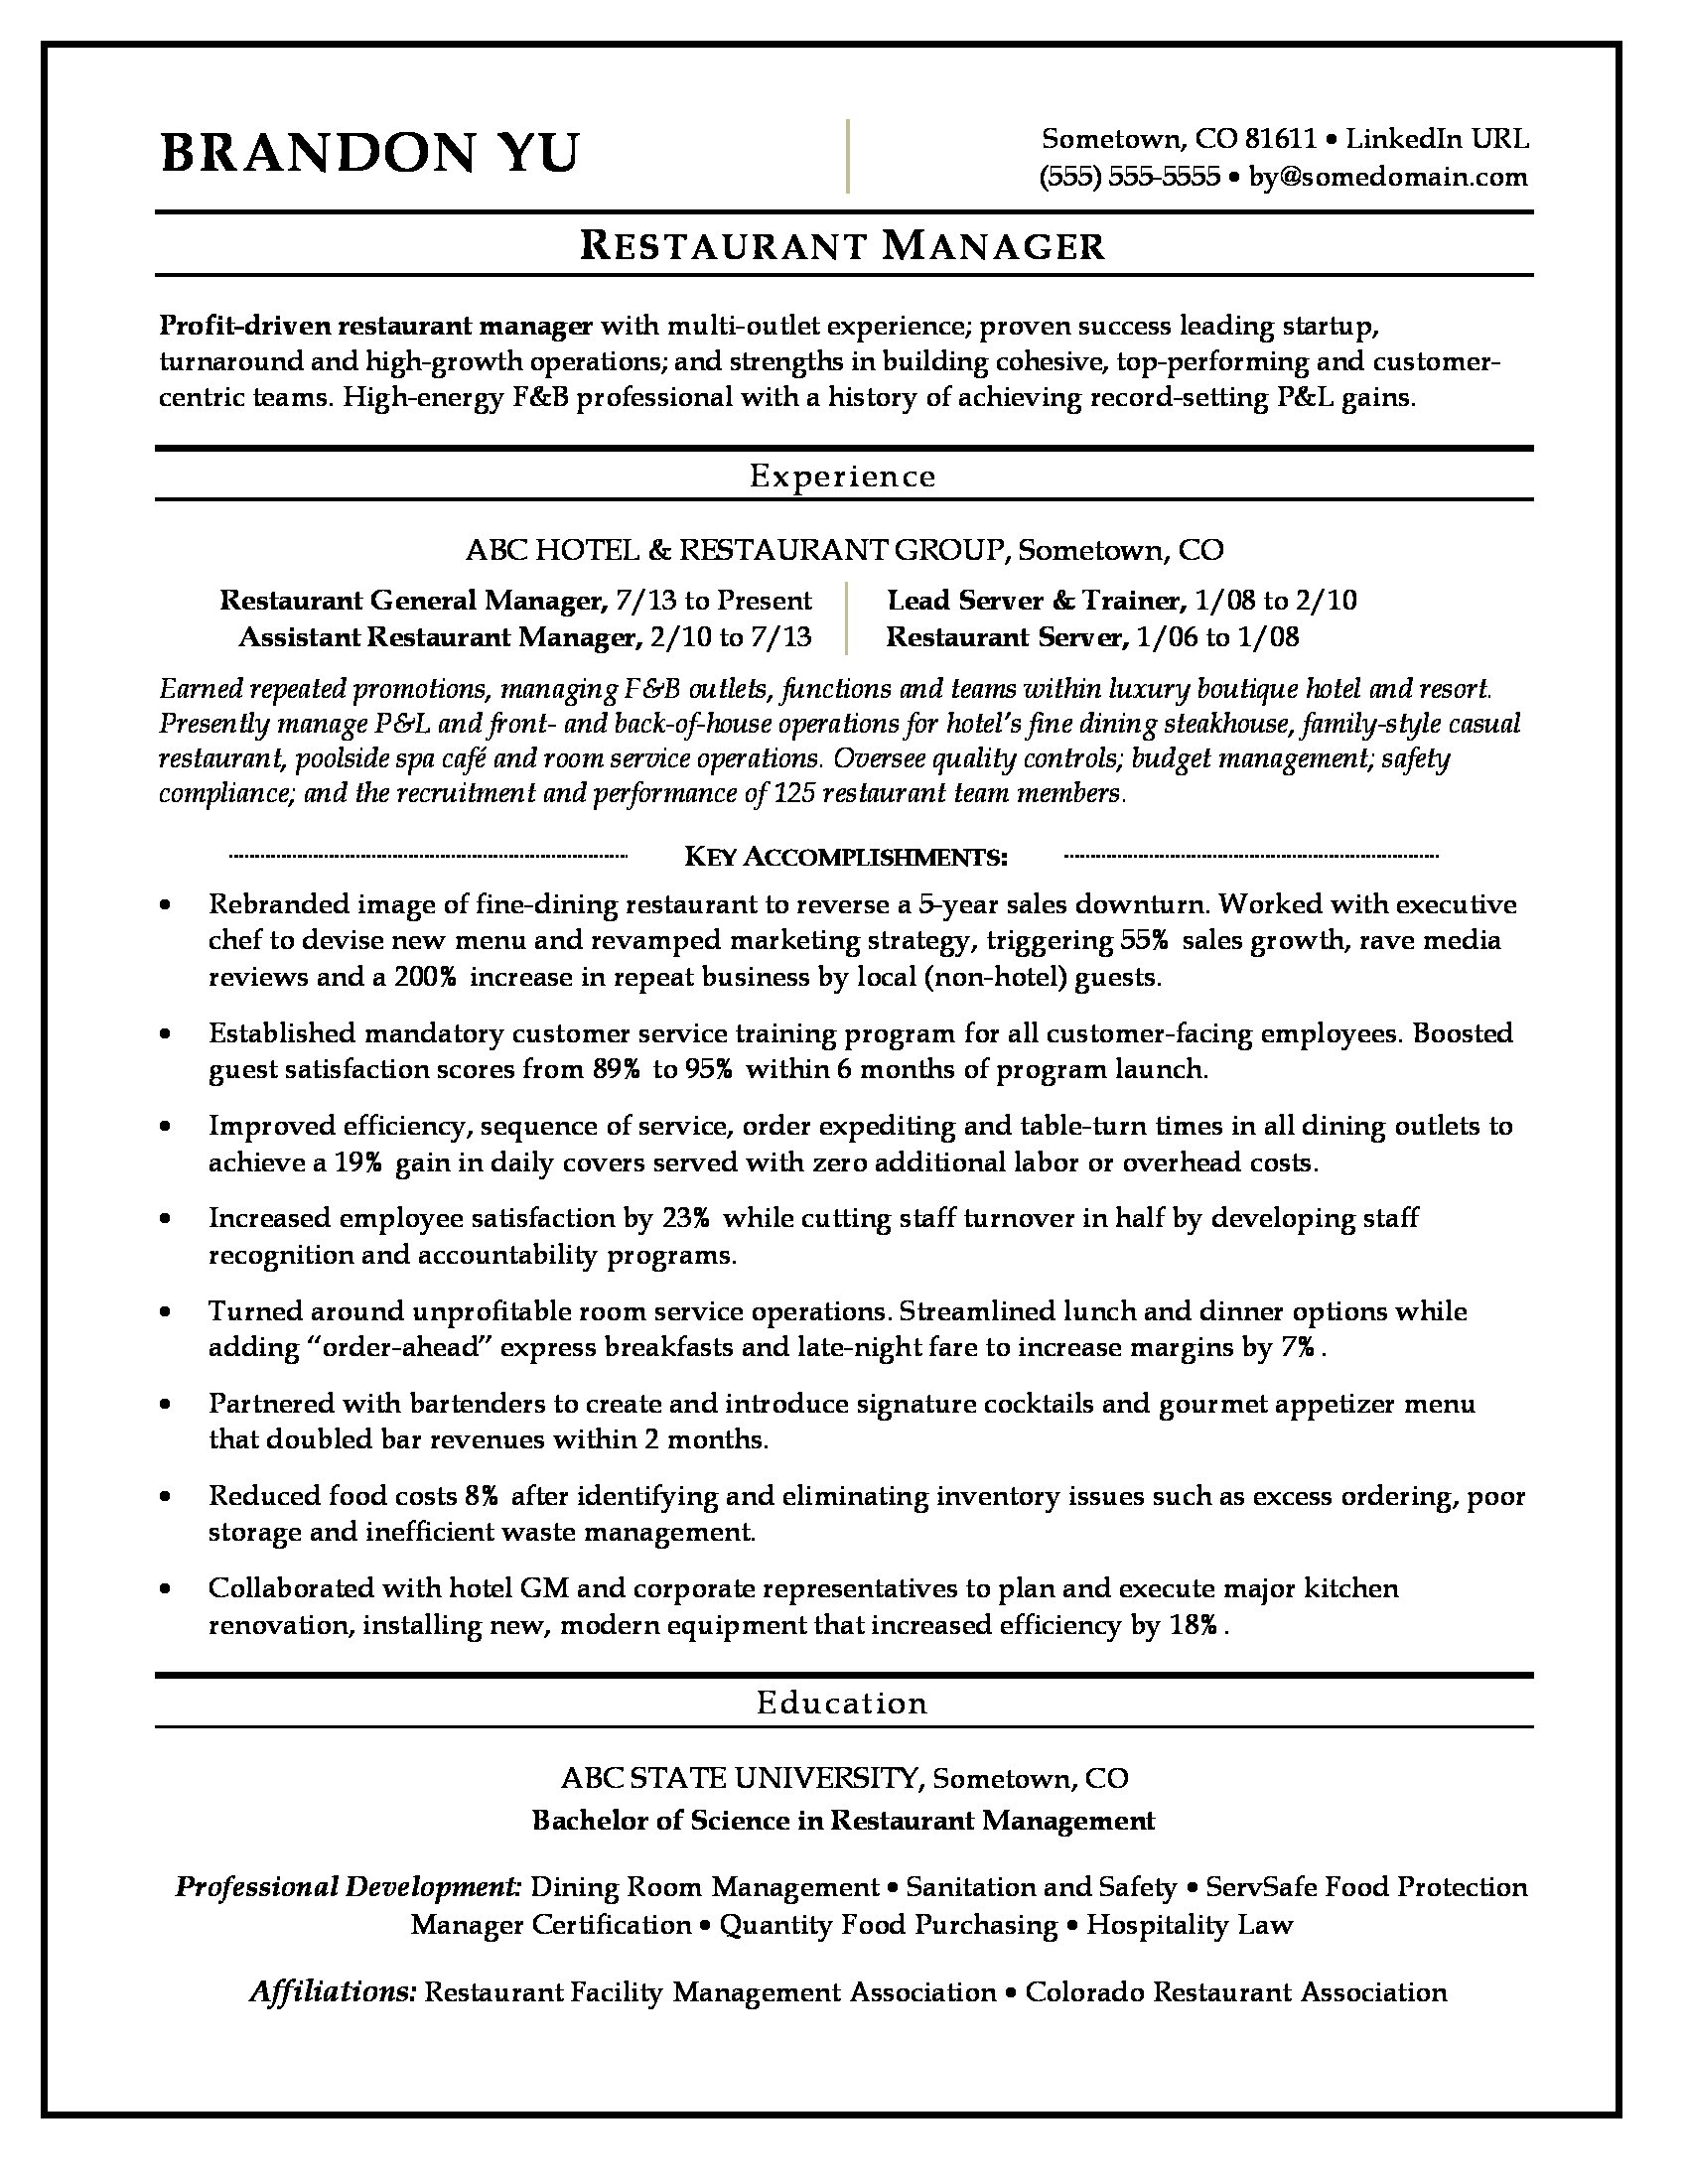 Sample Resume For A Restaurant Manager  Skills Based Resume Examples